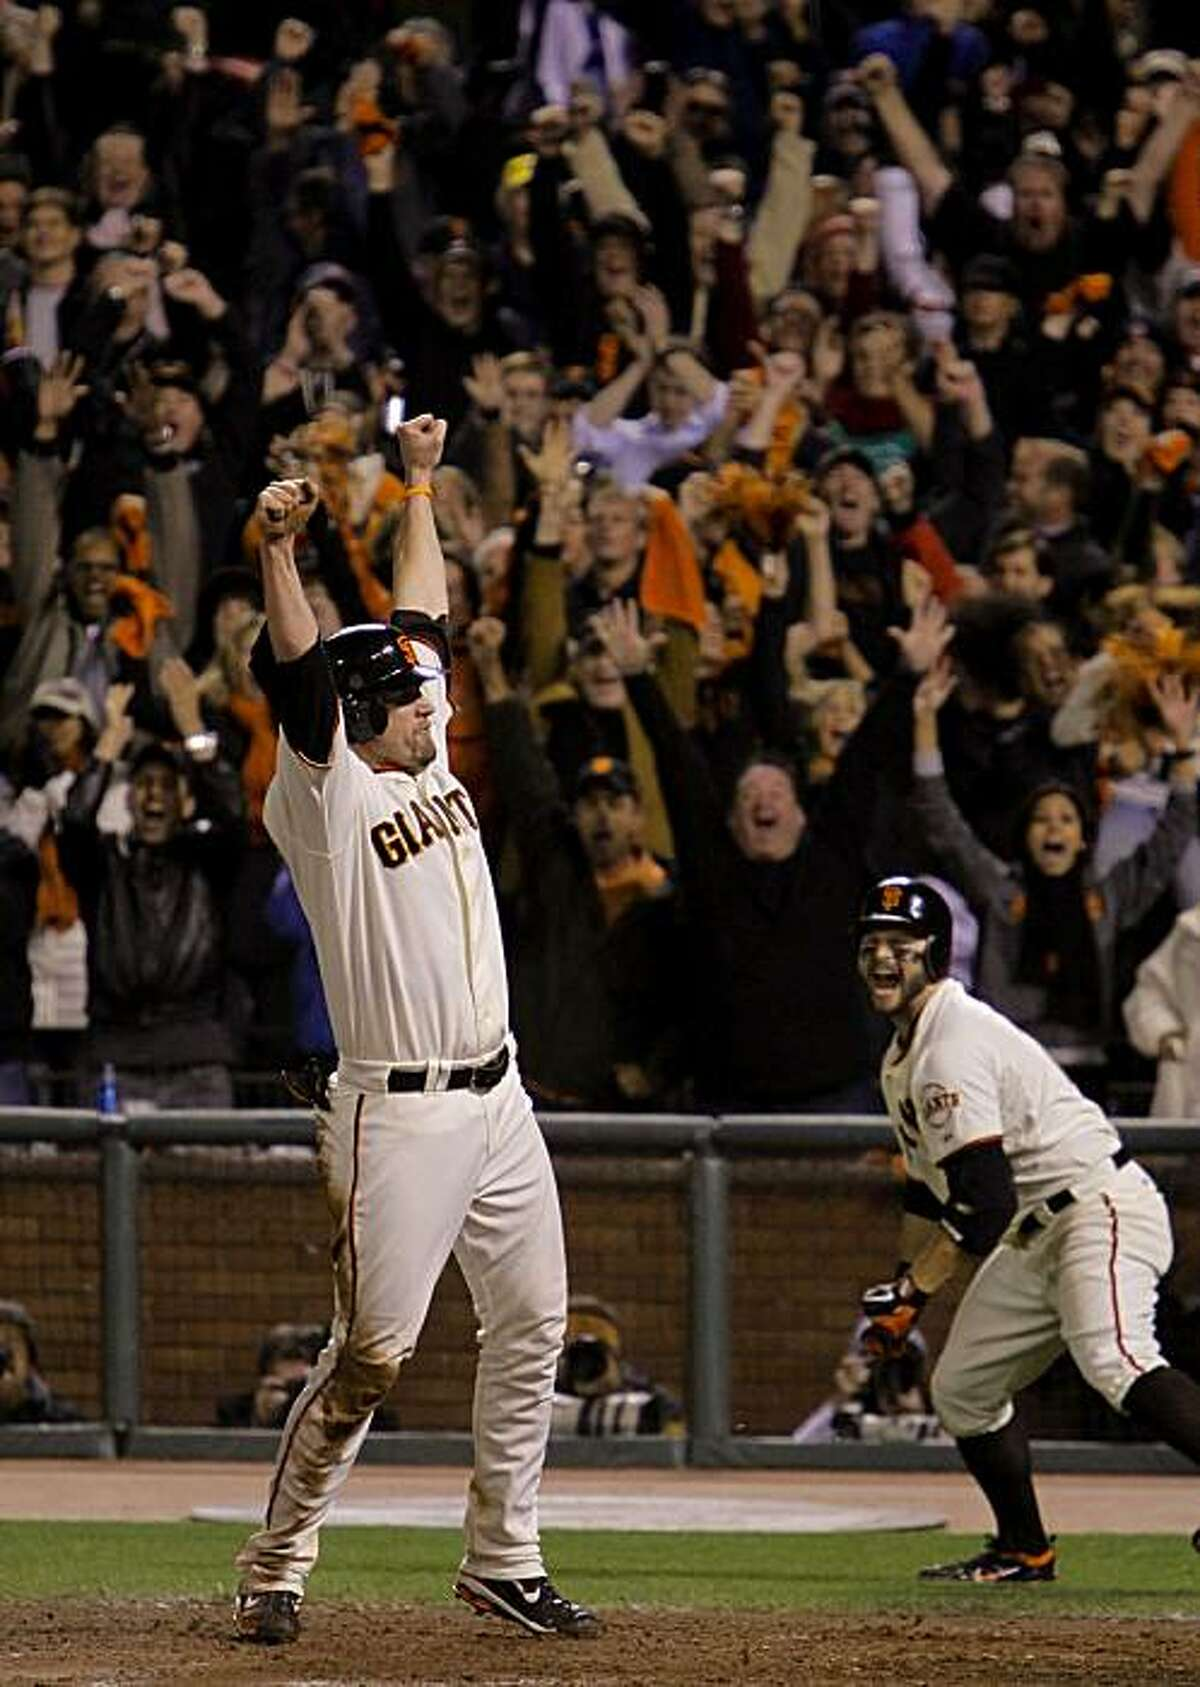 Giants Aubrey Huff, scores the winning run on a fly ball by Juan Uribe in the bottom of the ninth inning, as the San Francisco Giants beat the Philadelphia Phillies 6-5, to take game 4 of the National League Championship Series, on Wednesday Oct. 20, 2010 at AT&T Park, in San Francisco, Calif. Teammate Cody Ross reacts to the win at right.